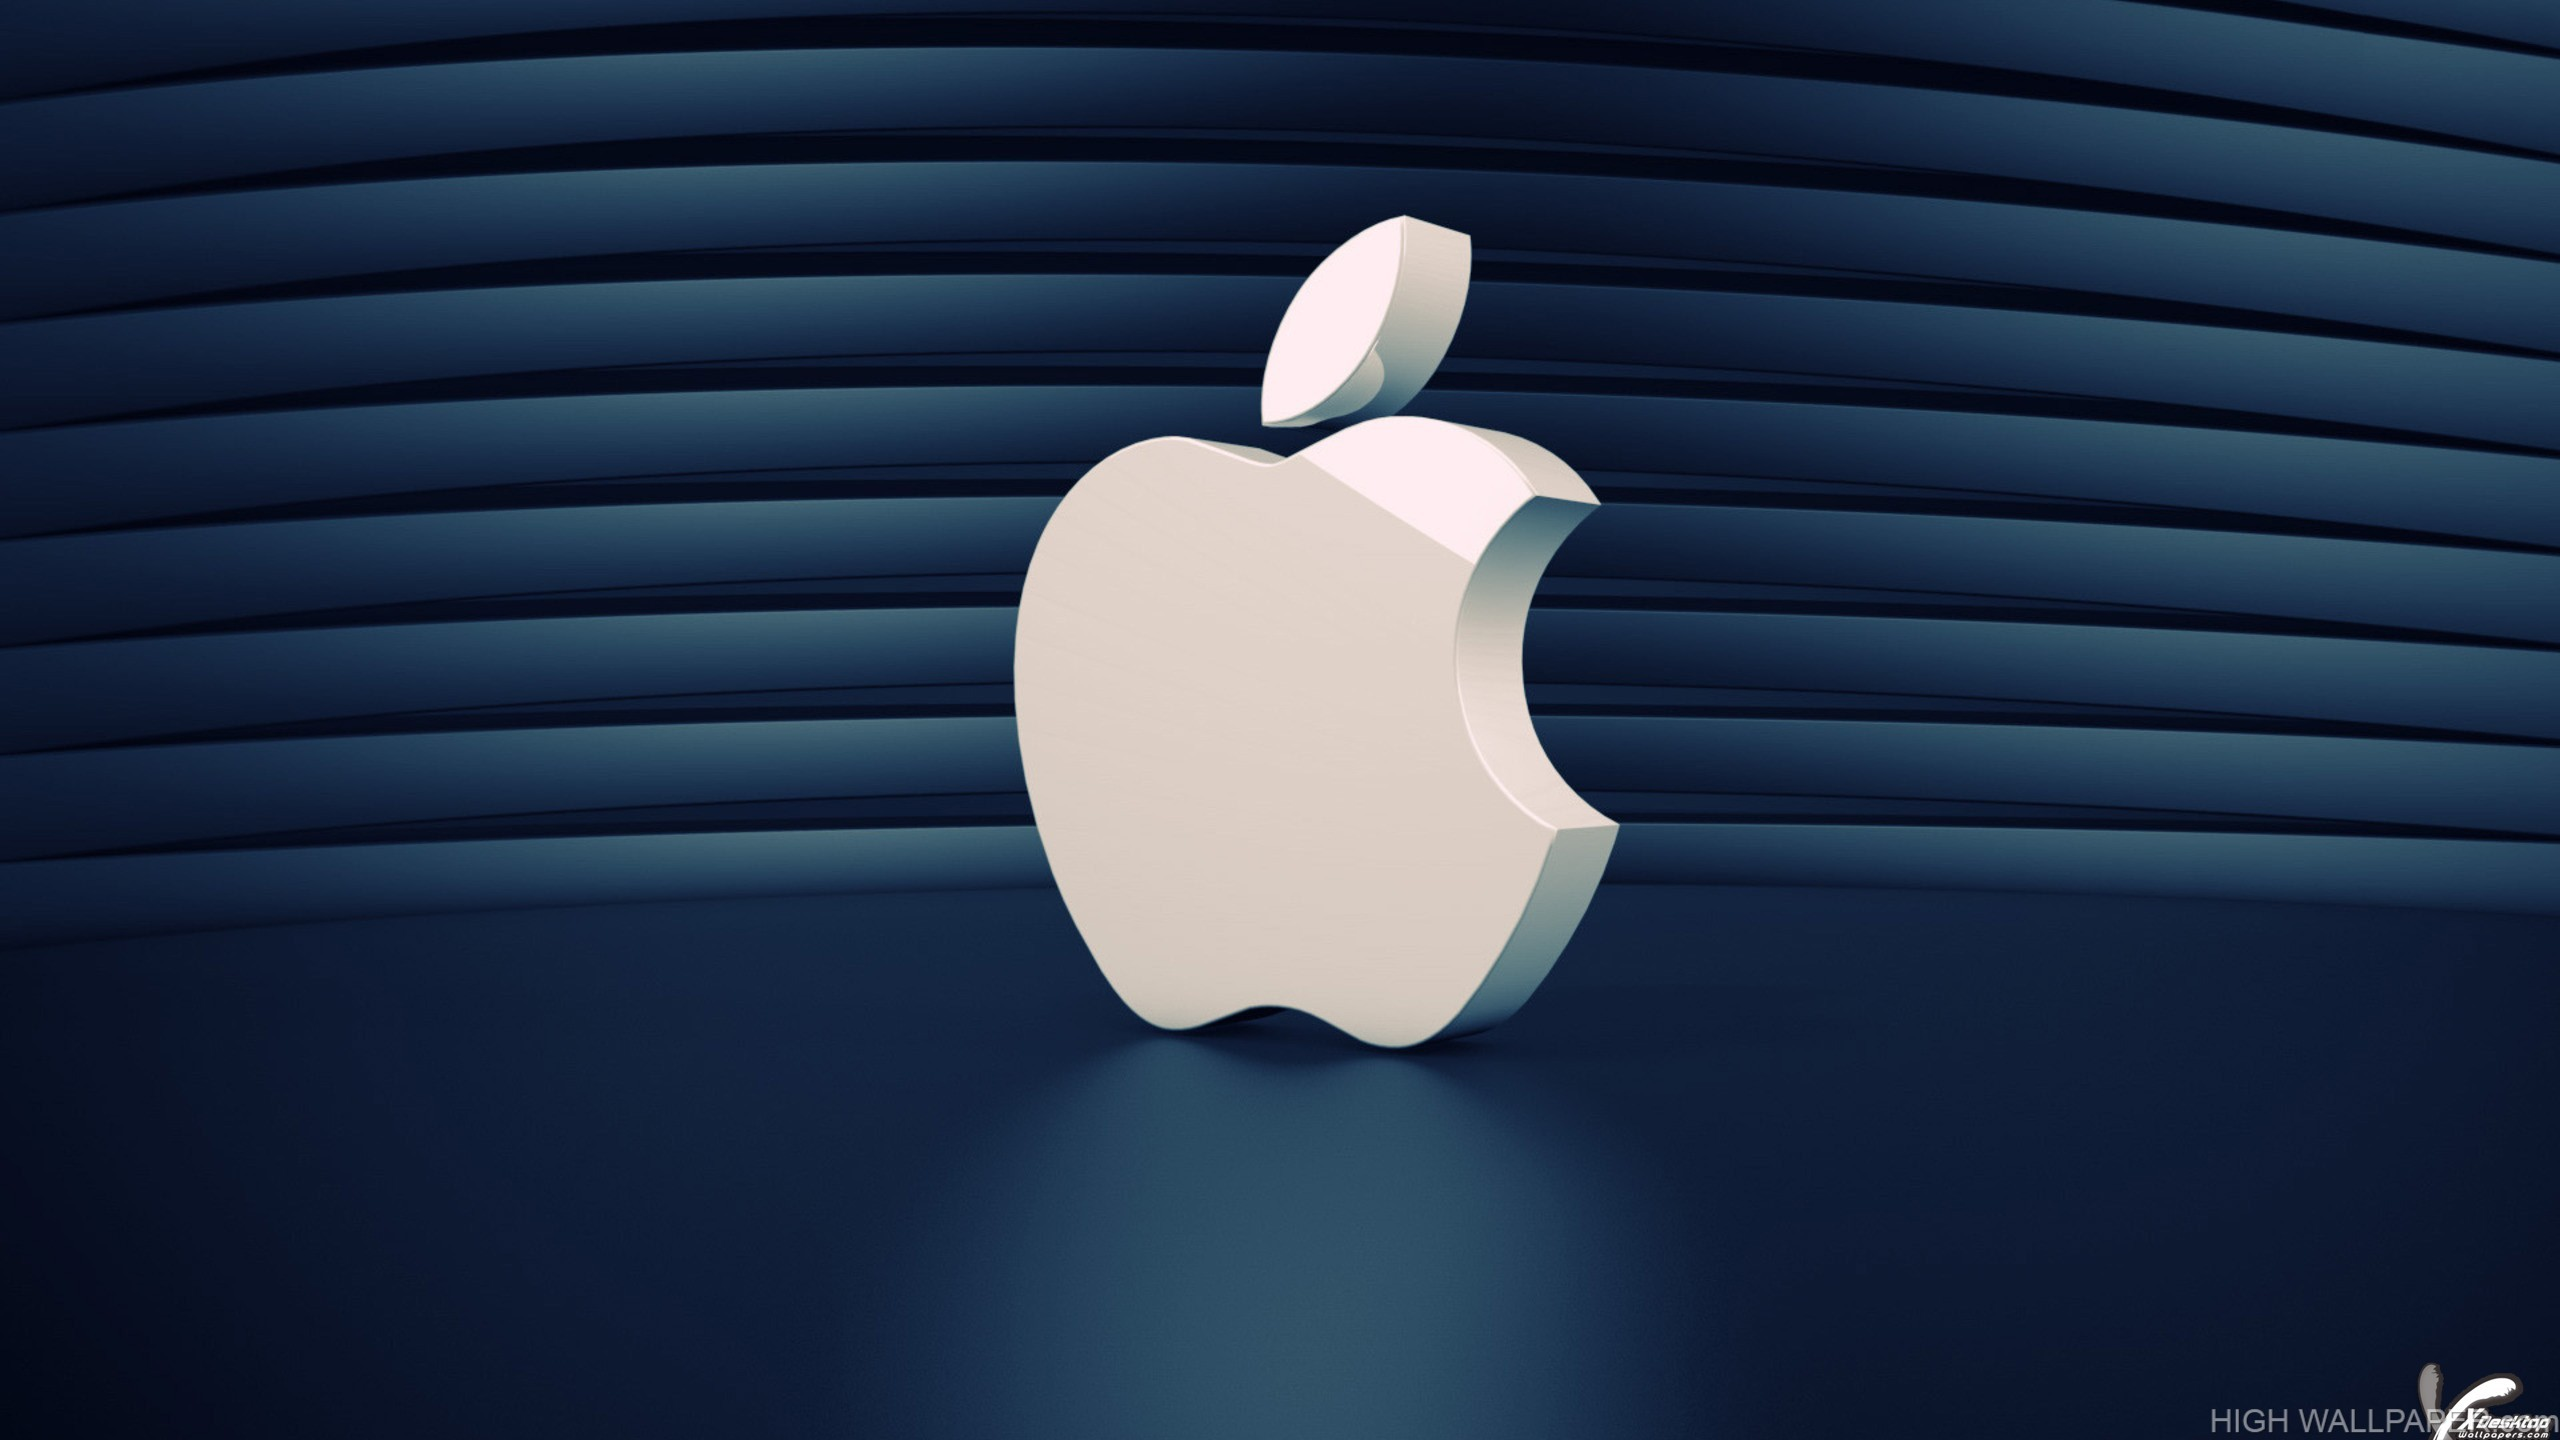 A Beautiful White 3D Apple Logo